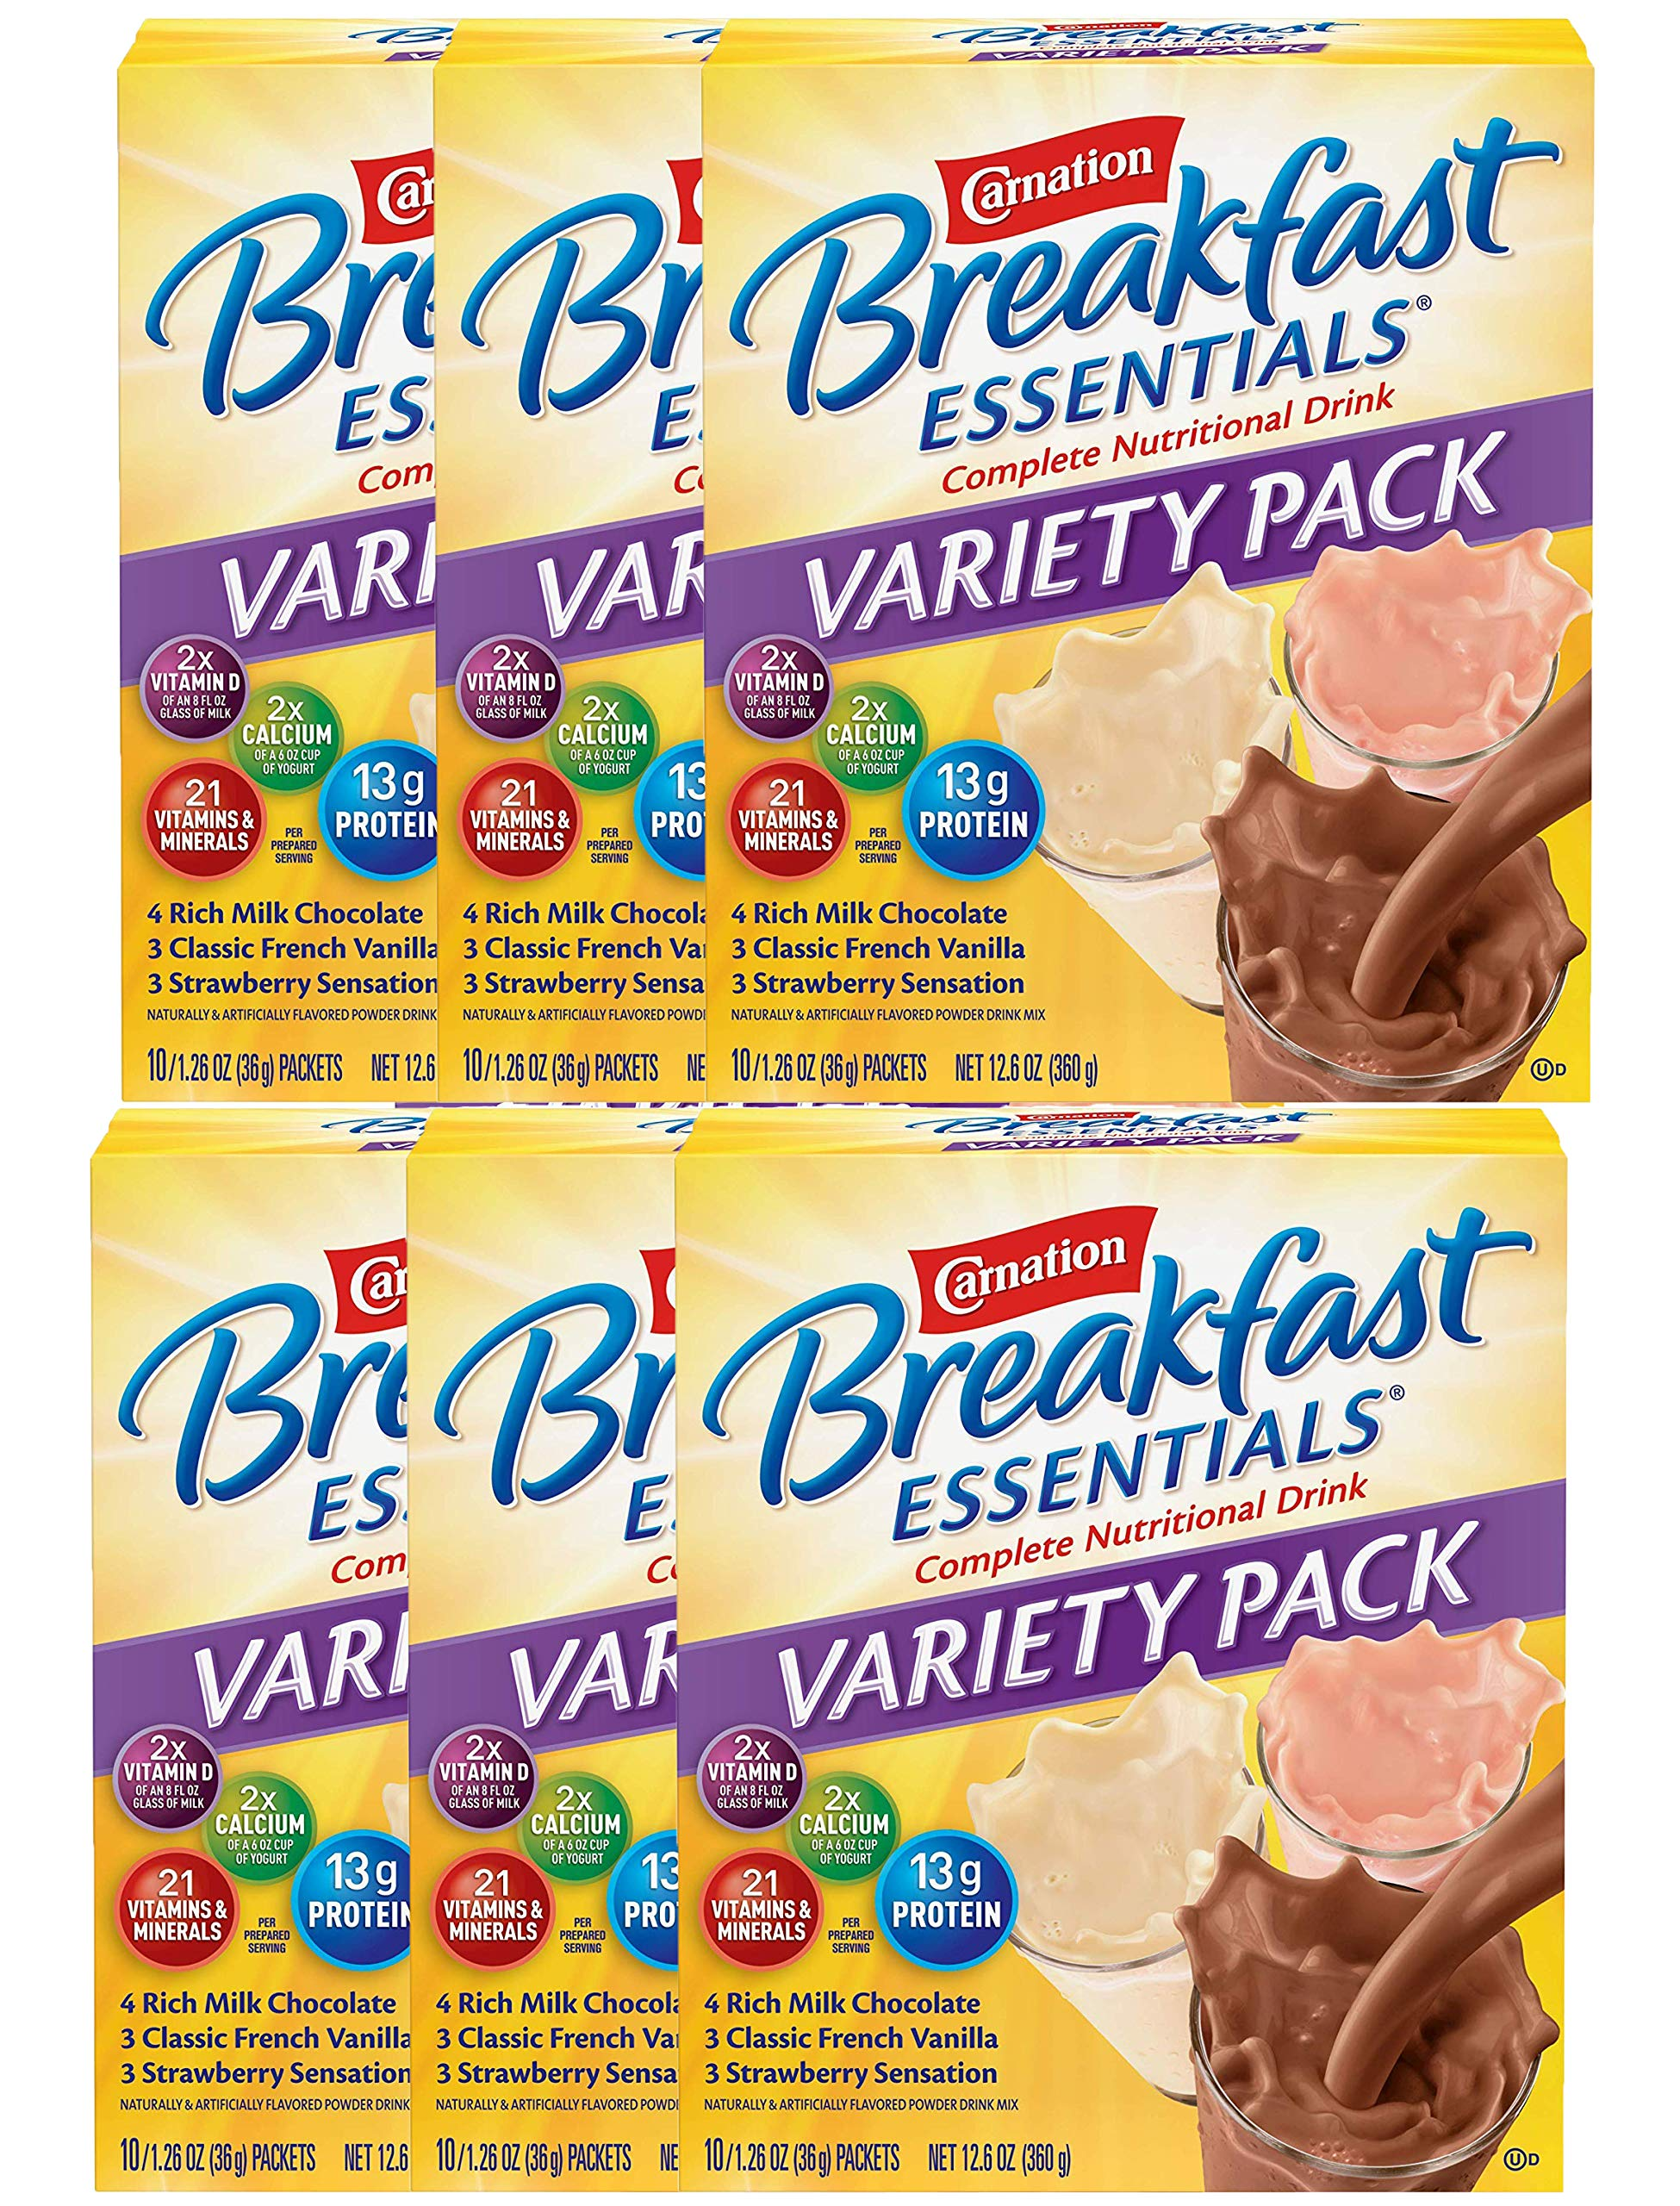 Carnation Breakfast Essentials Powder Drink Mix Variety Pack, Complete Nutritional Drink, 10 Count Box of 1.26 oz Packets (Pack - 6) by Carnation Breakfast Essentials